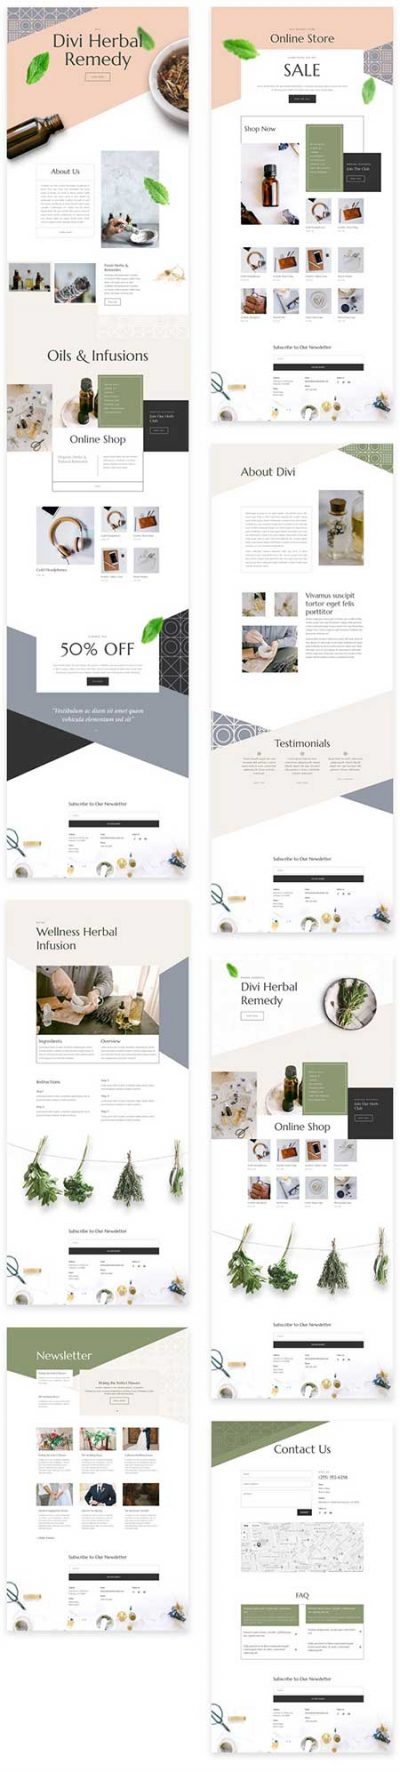 Divi herbal store layouts